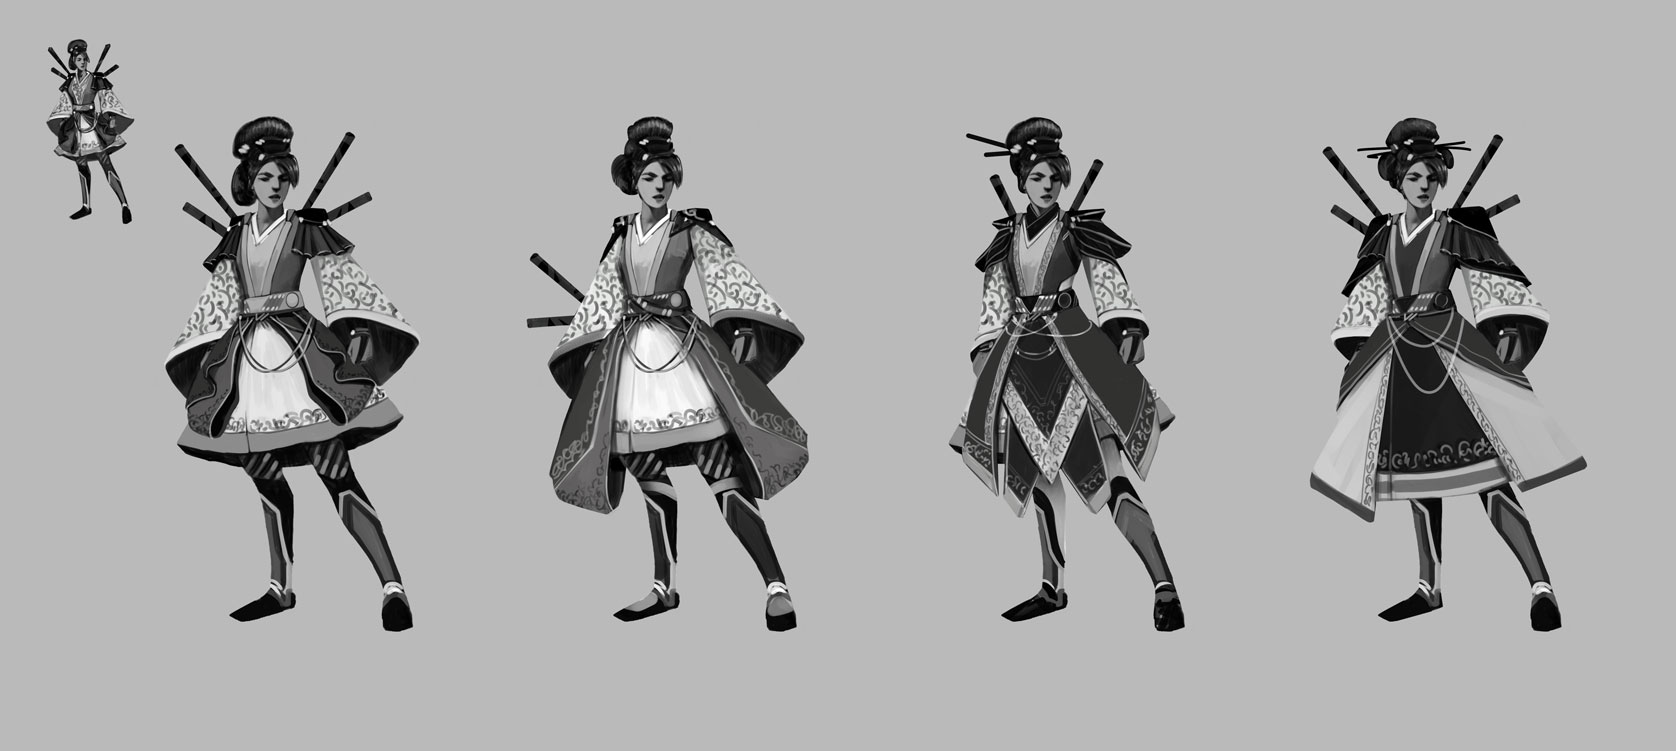 j_strohl_Character1_Iterations